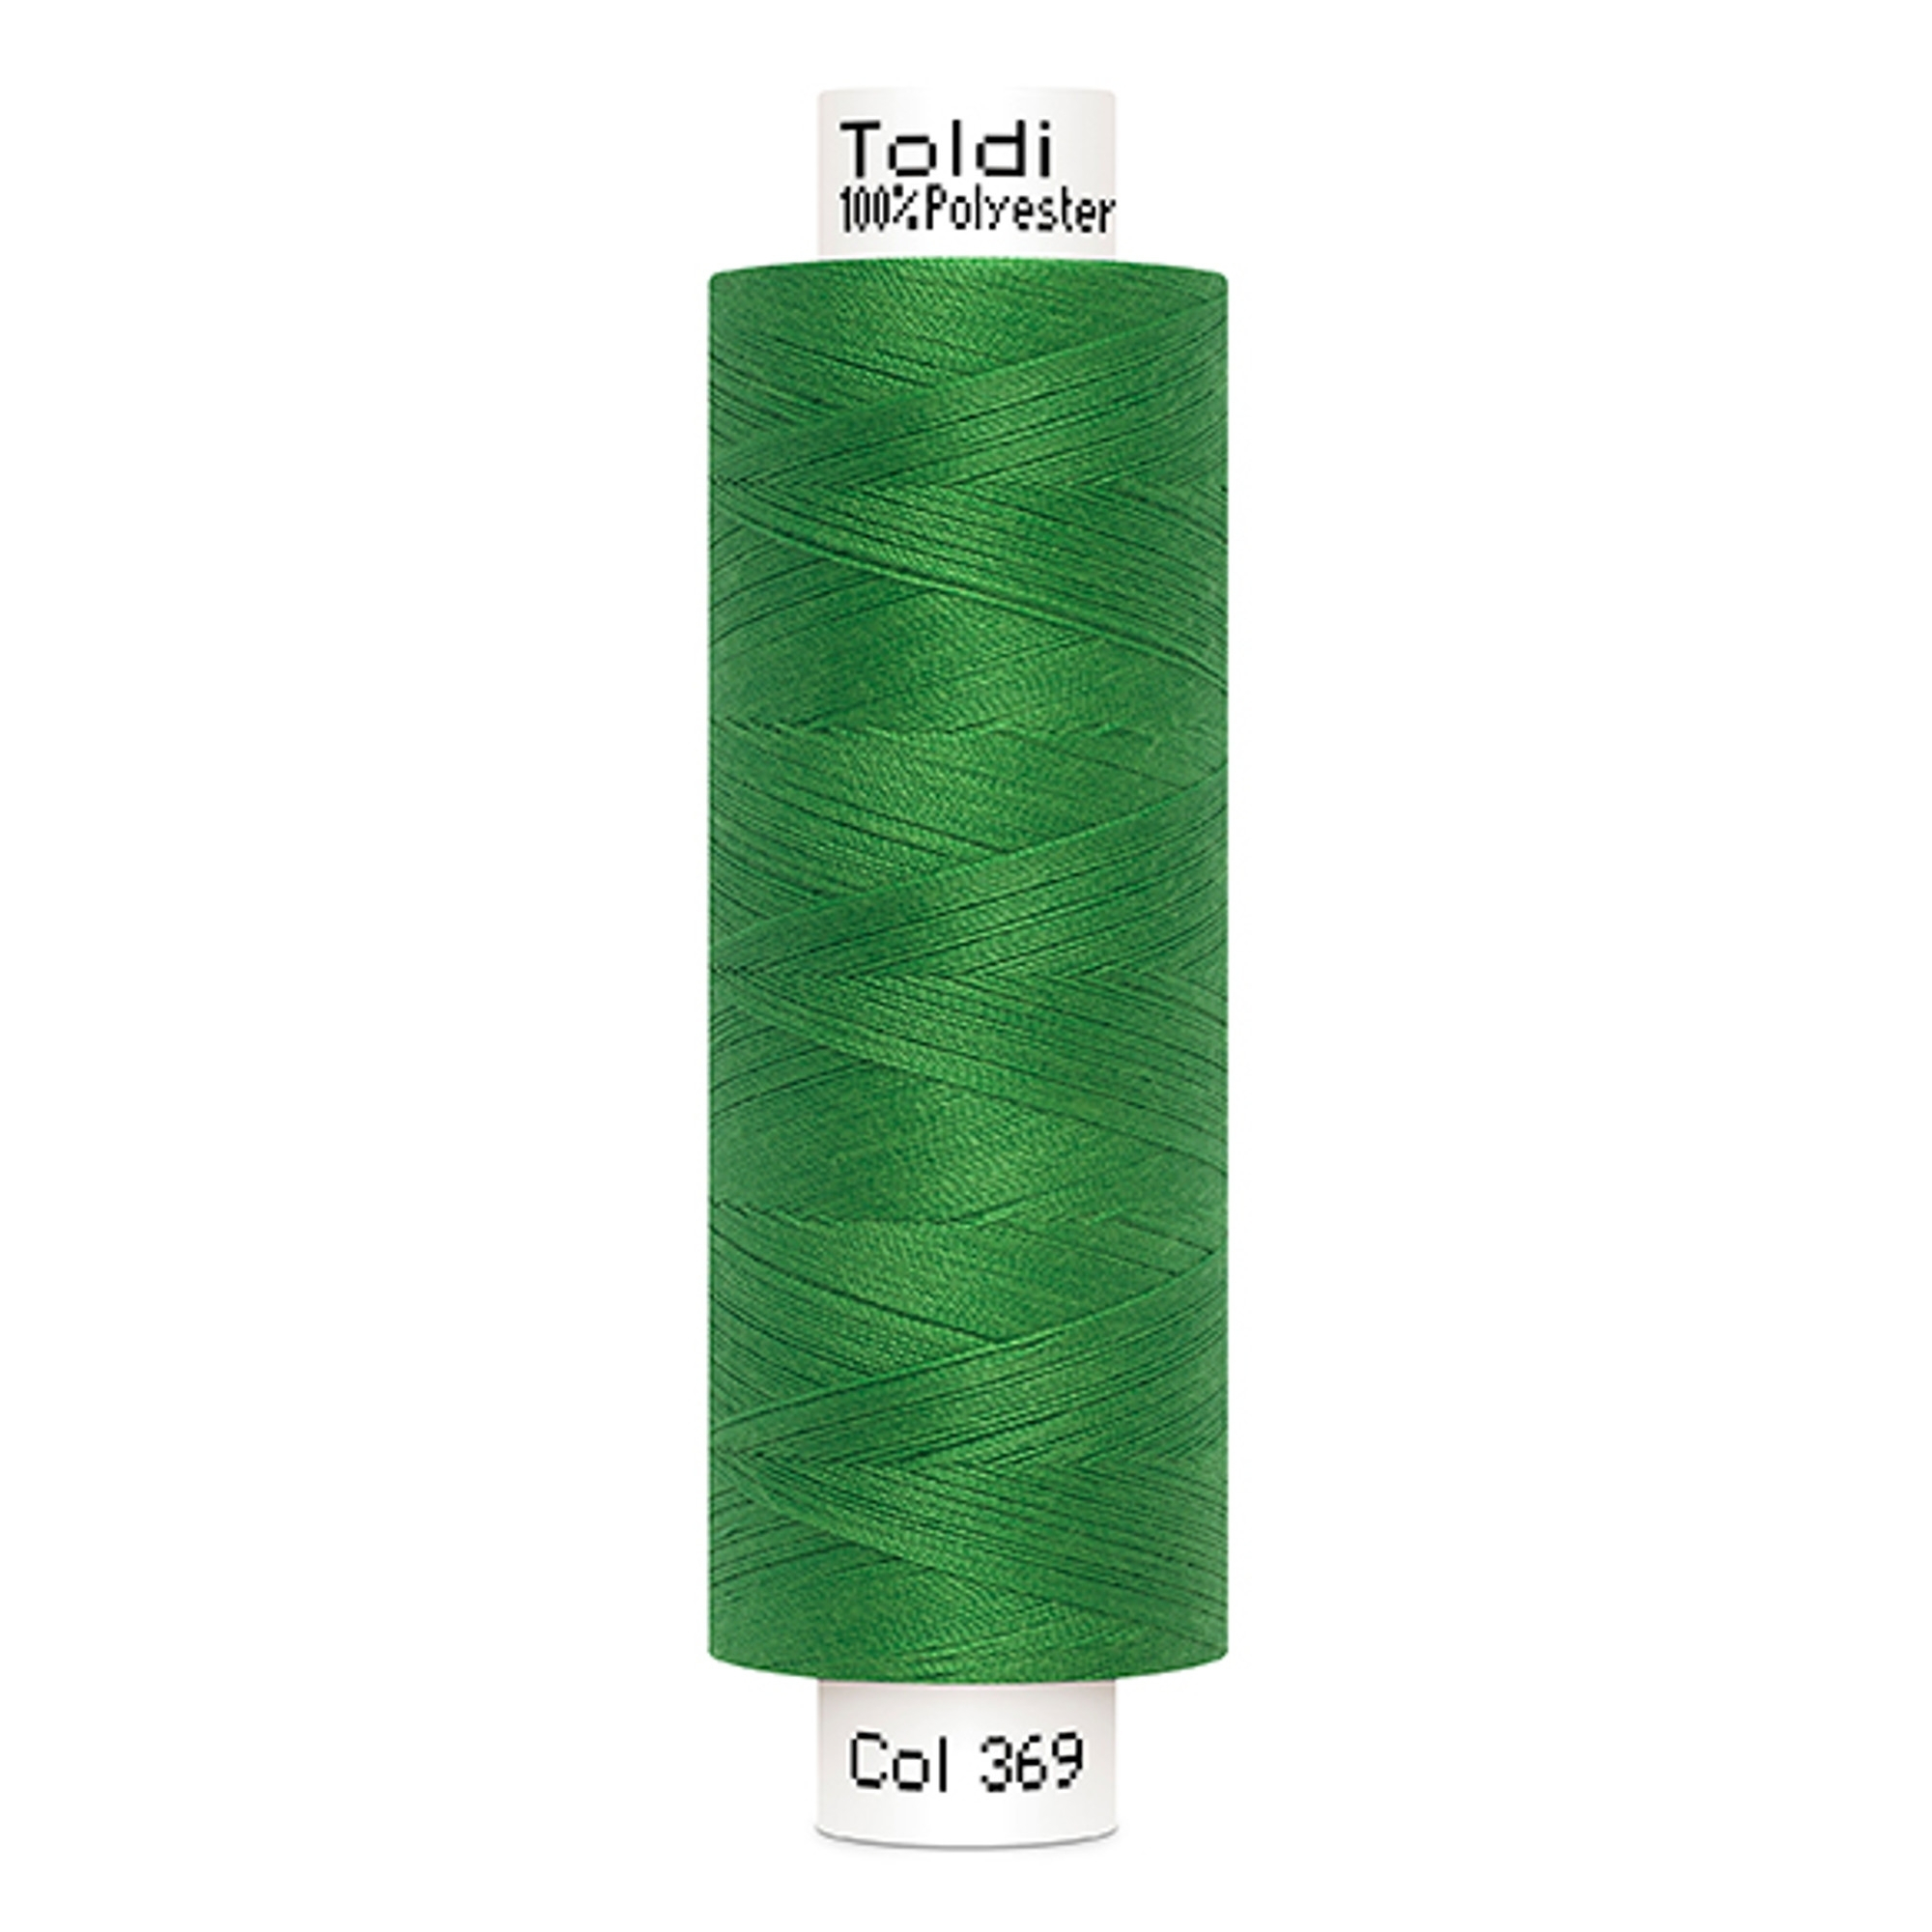 Gütermann Toldi Sewing Thread, 500 m green | 707589-396 |